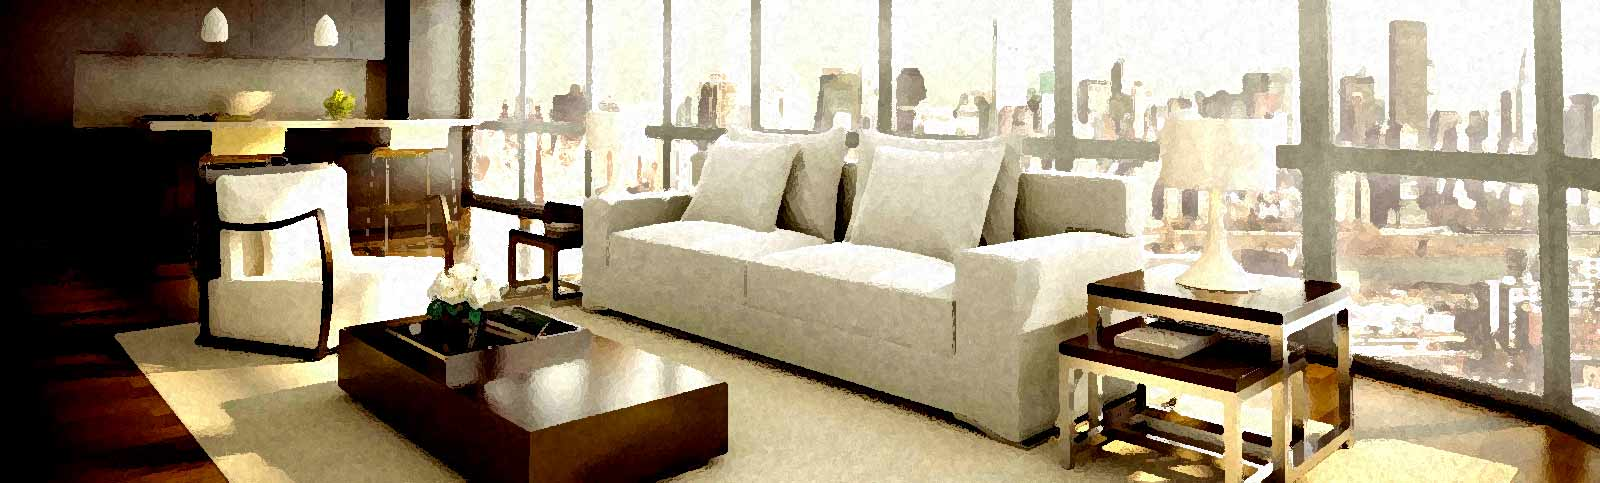 Some Interior Design Tips For Beginners